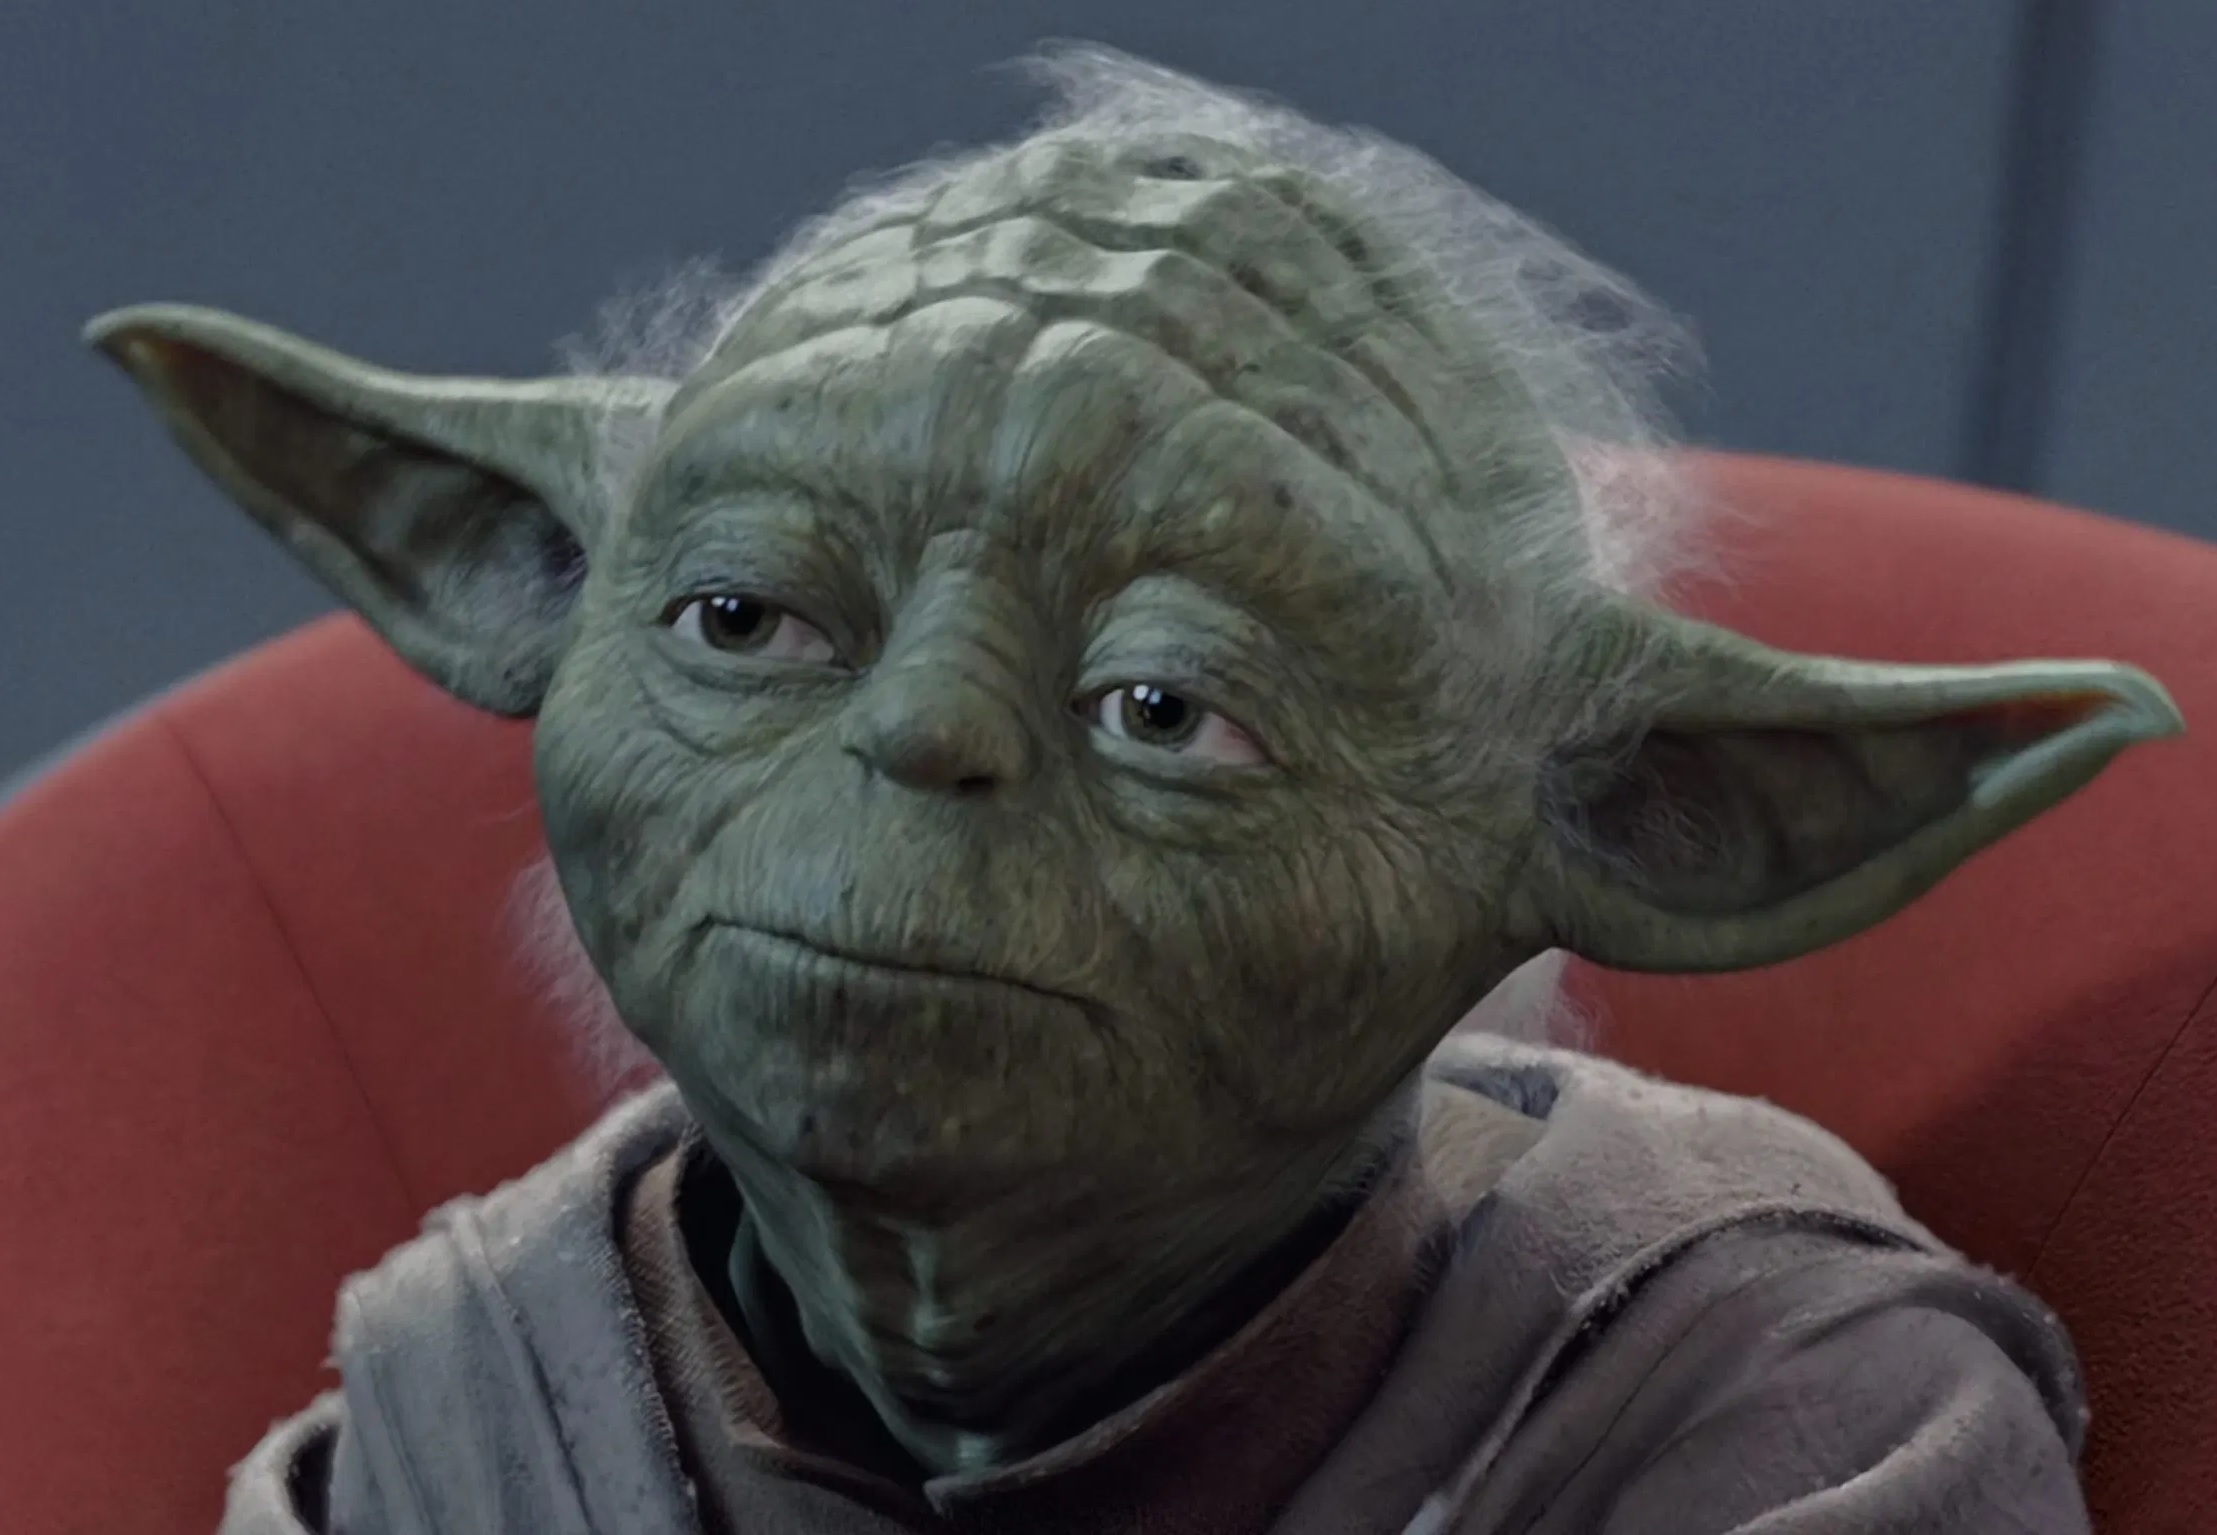 File:Frank Oz as Yoda (Voice) (TPM).jpg